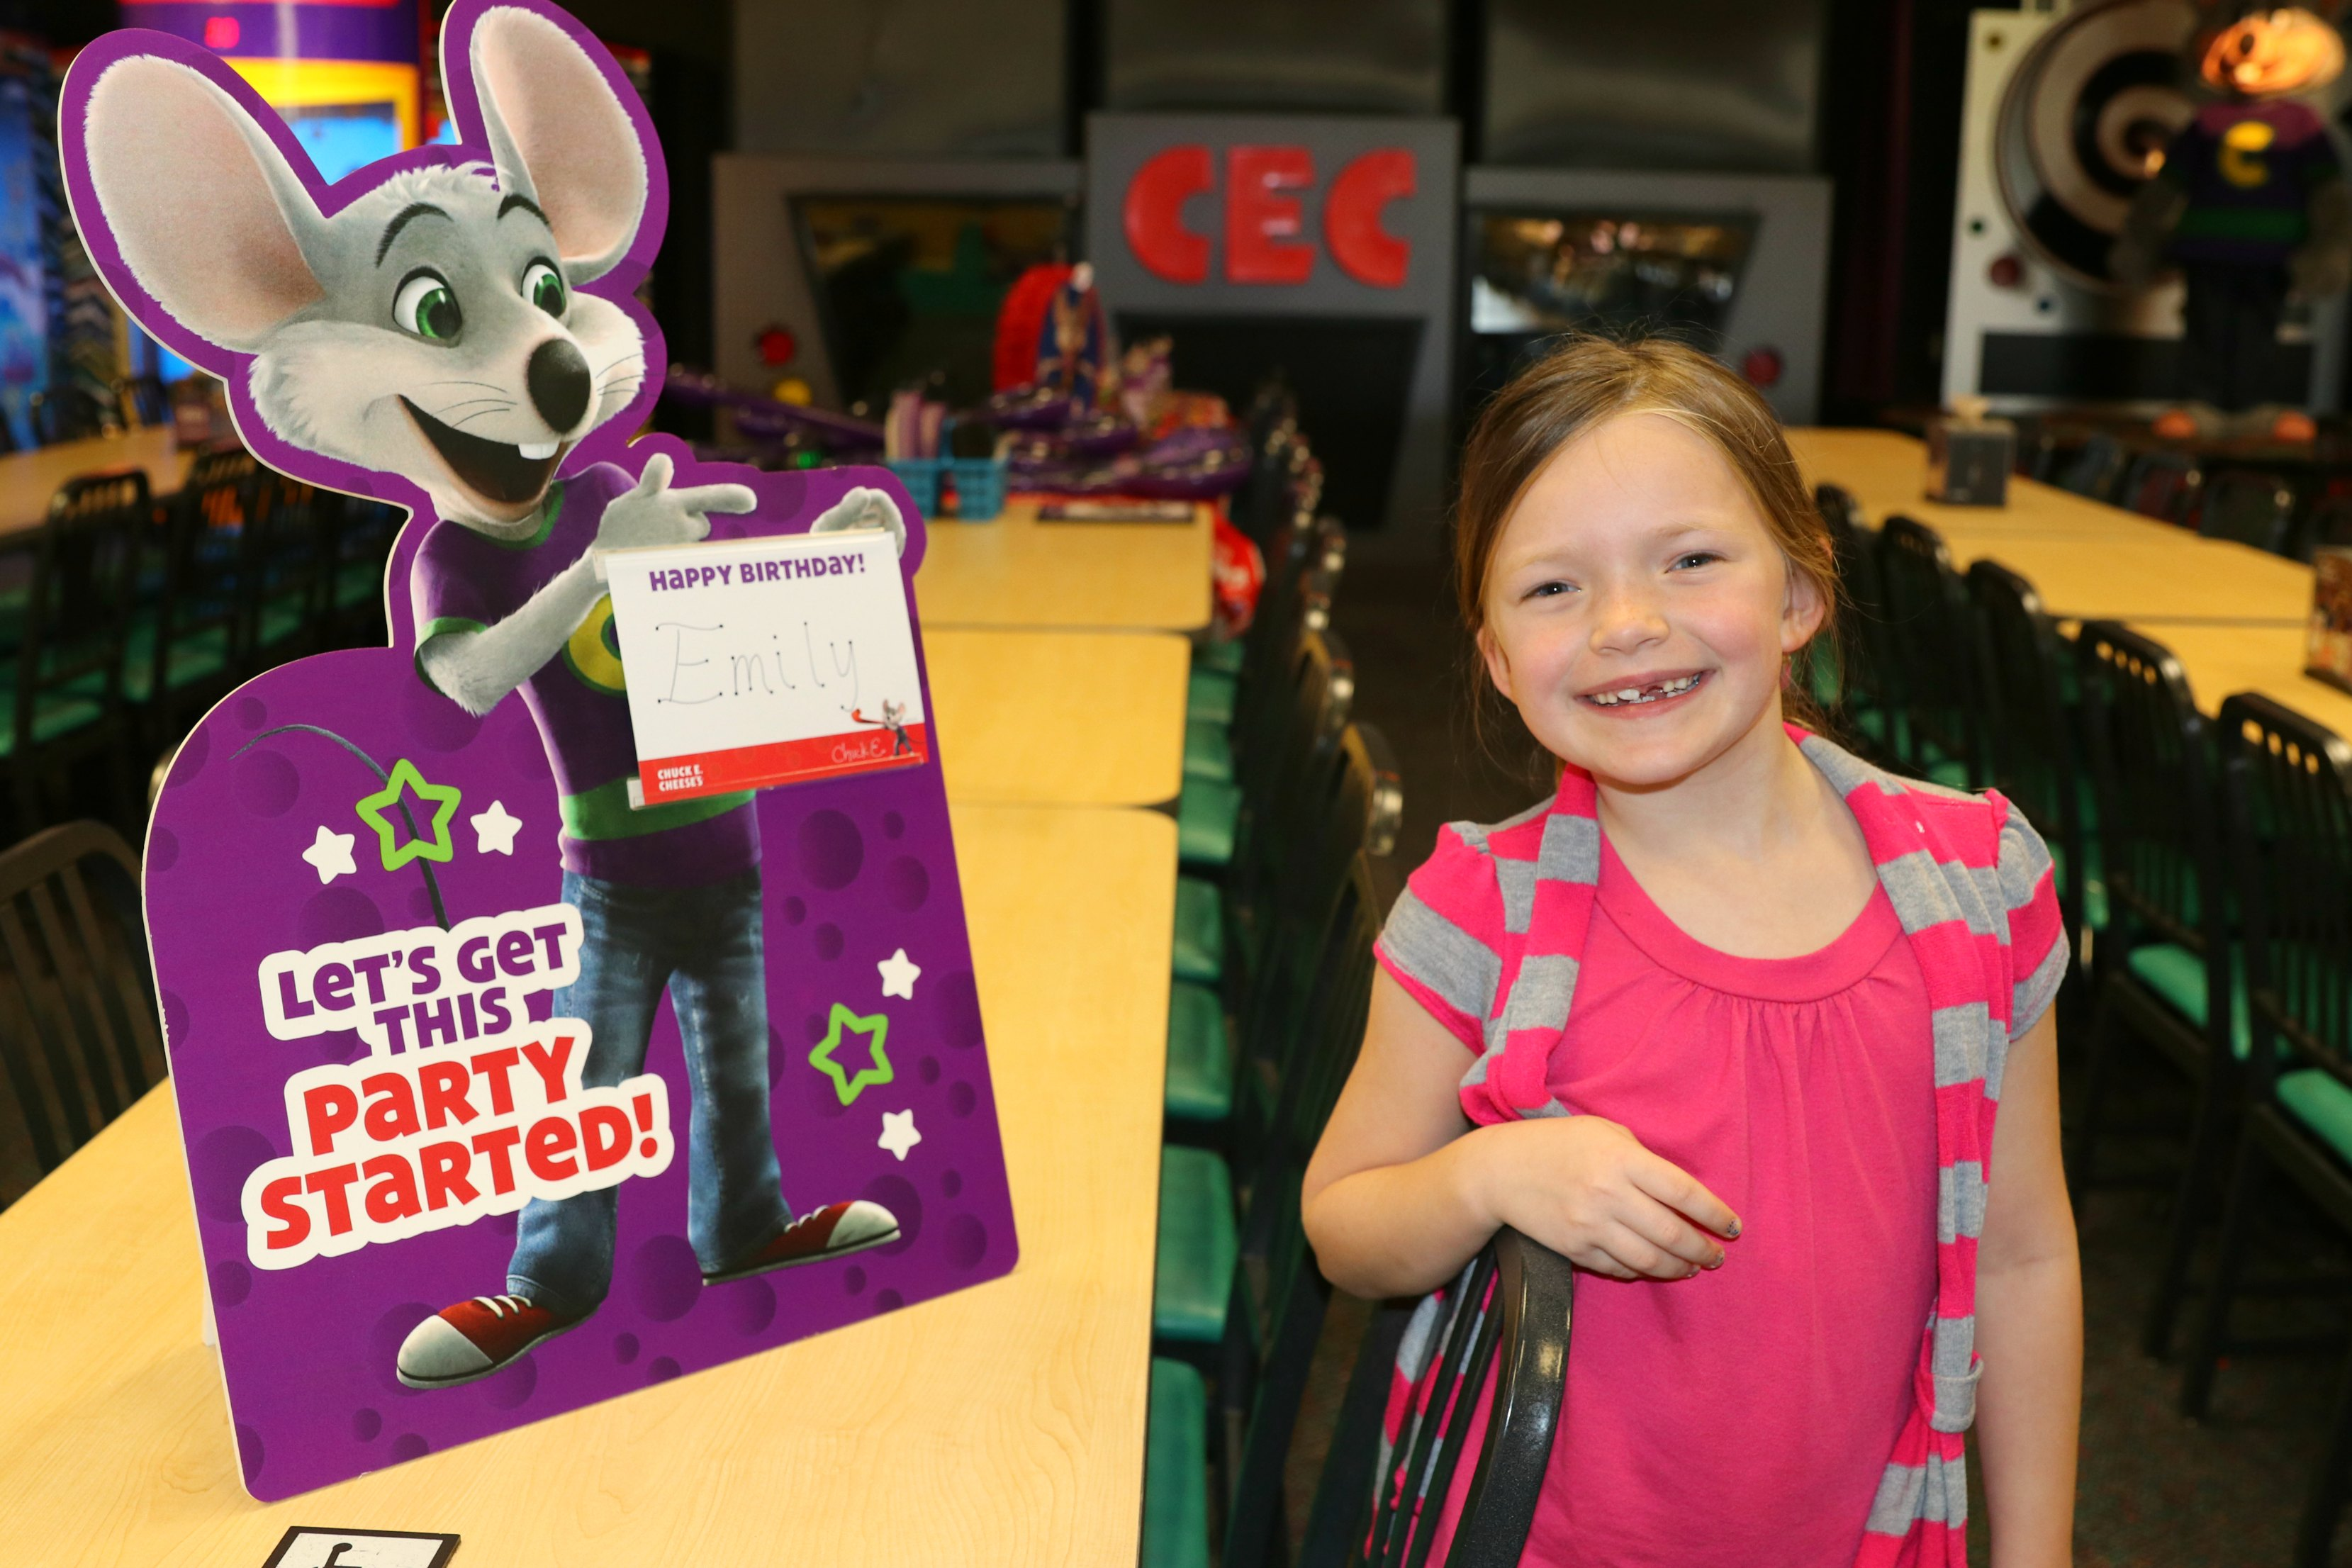 Chuck E. Cheese birthday party review